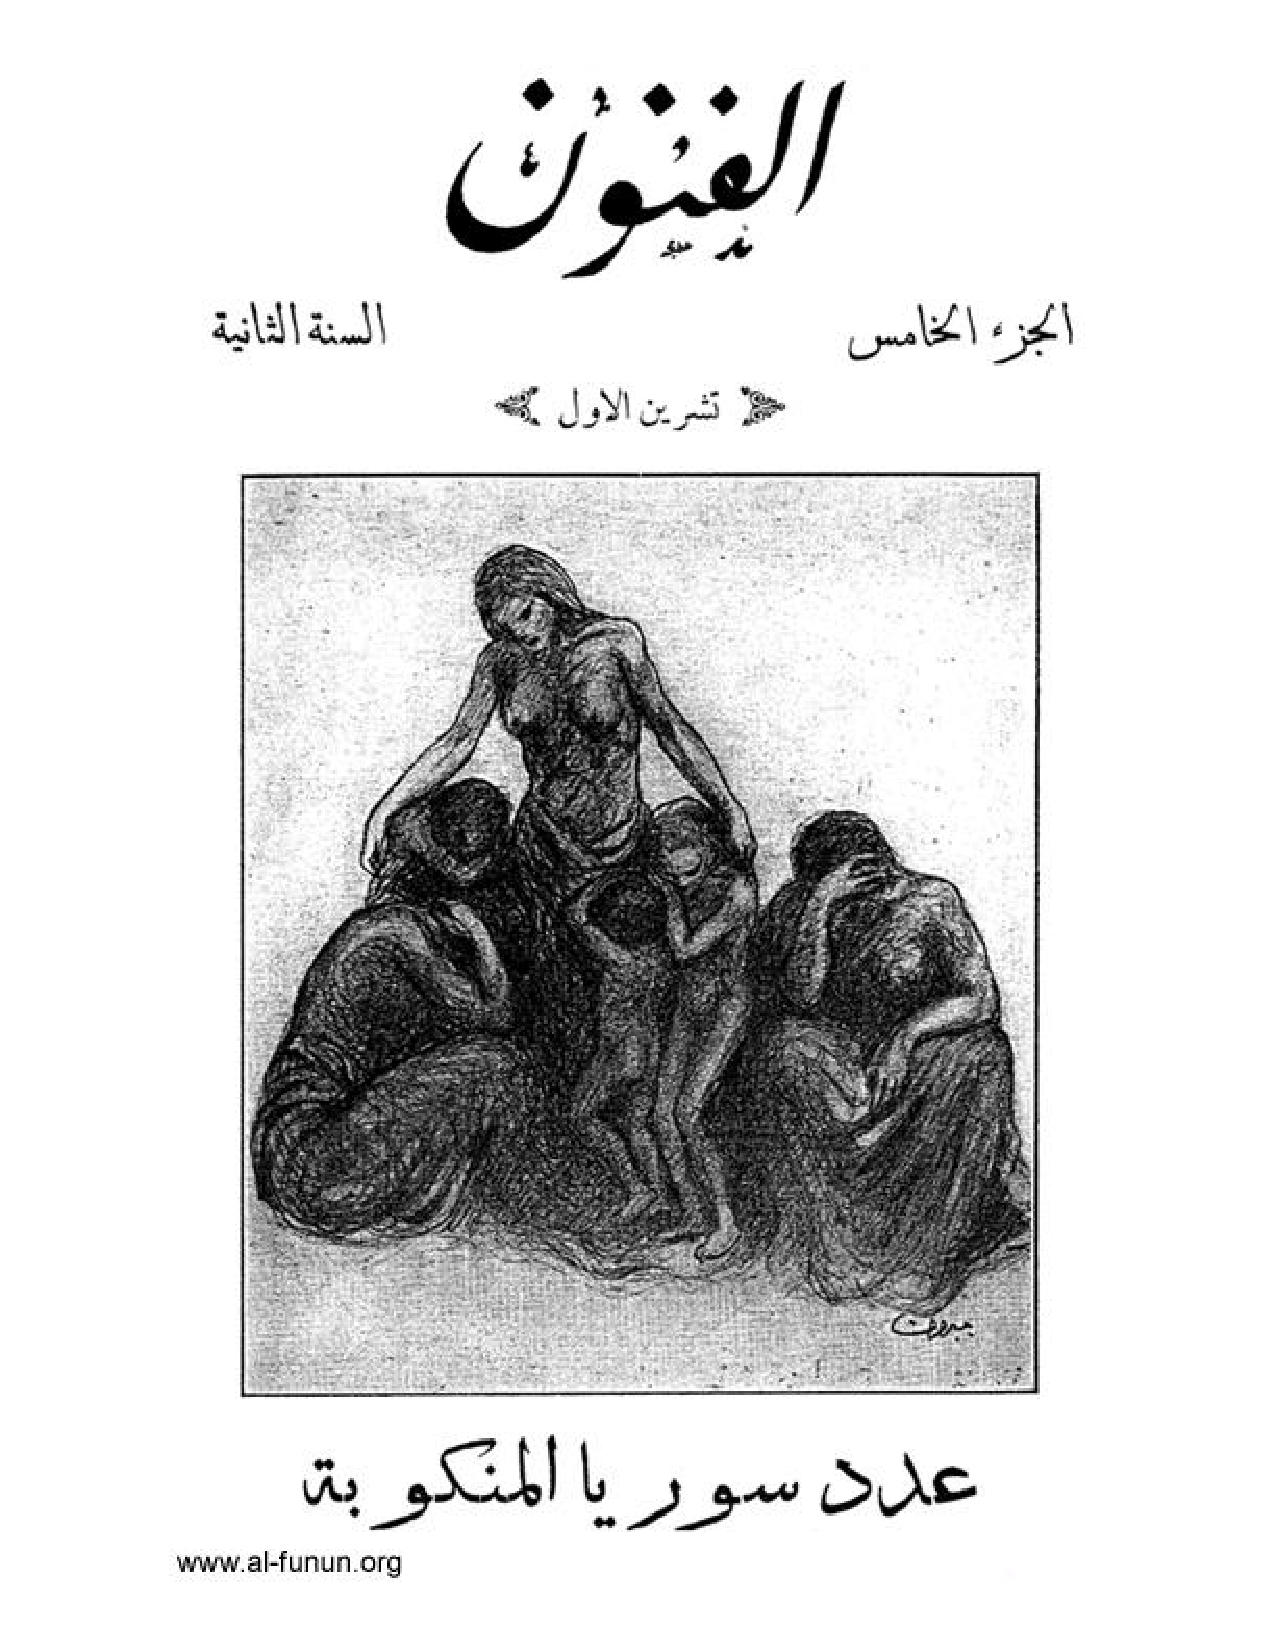 Untitled Drawing [Starving Family - Cover], Mata Ahli [Poem], al-Ja'i`ah al-Musta`tiyah [Drawing], Wijh Ummi, Wijh Ummati [Drawing], al-Funun 2, no. 5 (October 1916)